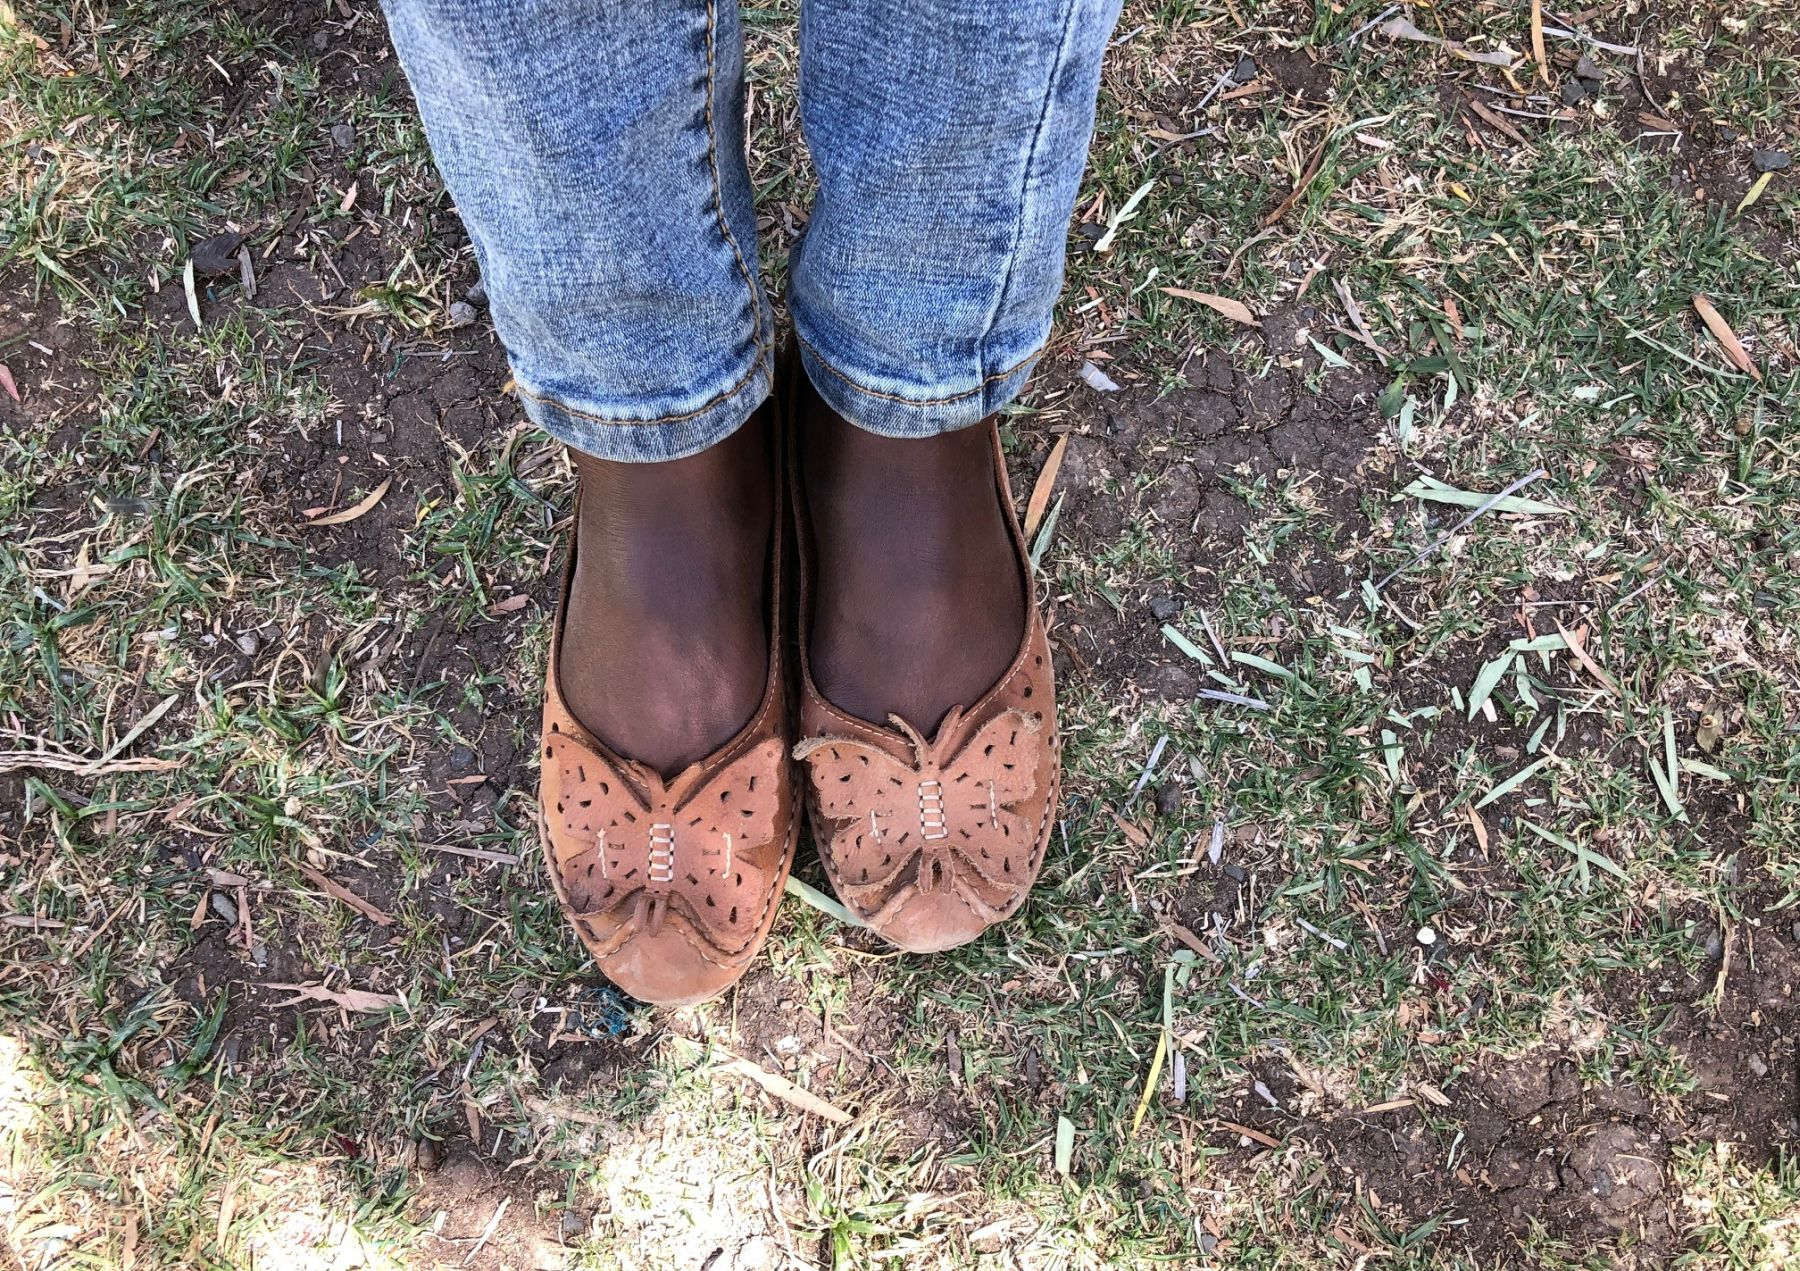 To protect Senait's privacy we aren't showing her face. Her feet and shoes symbolize her new journey in Christ.